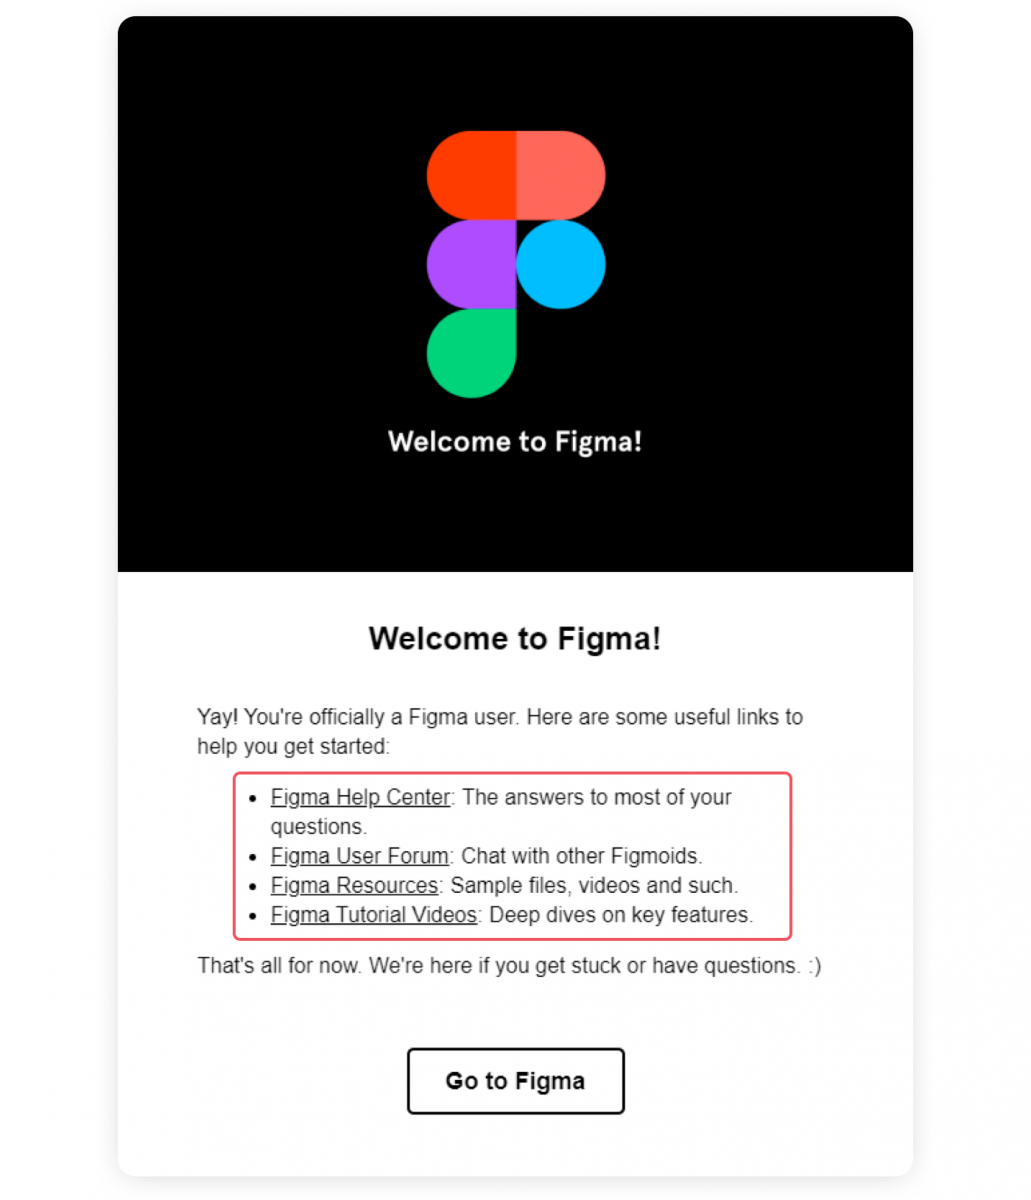 Welcome email from Figma